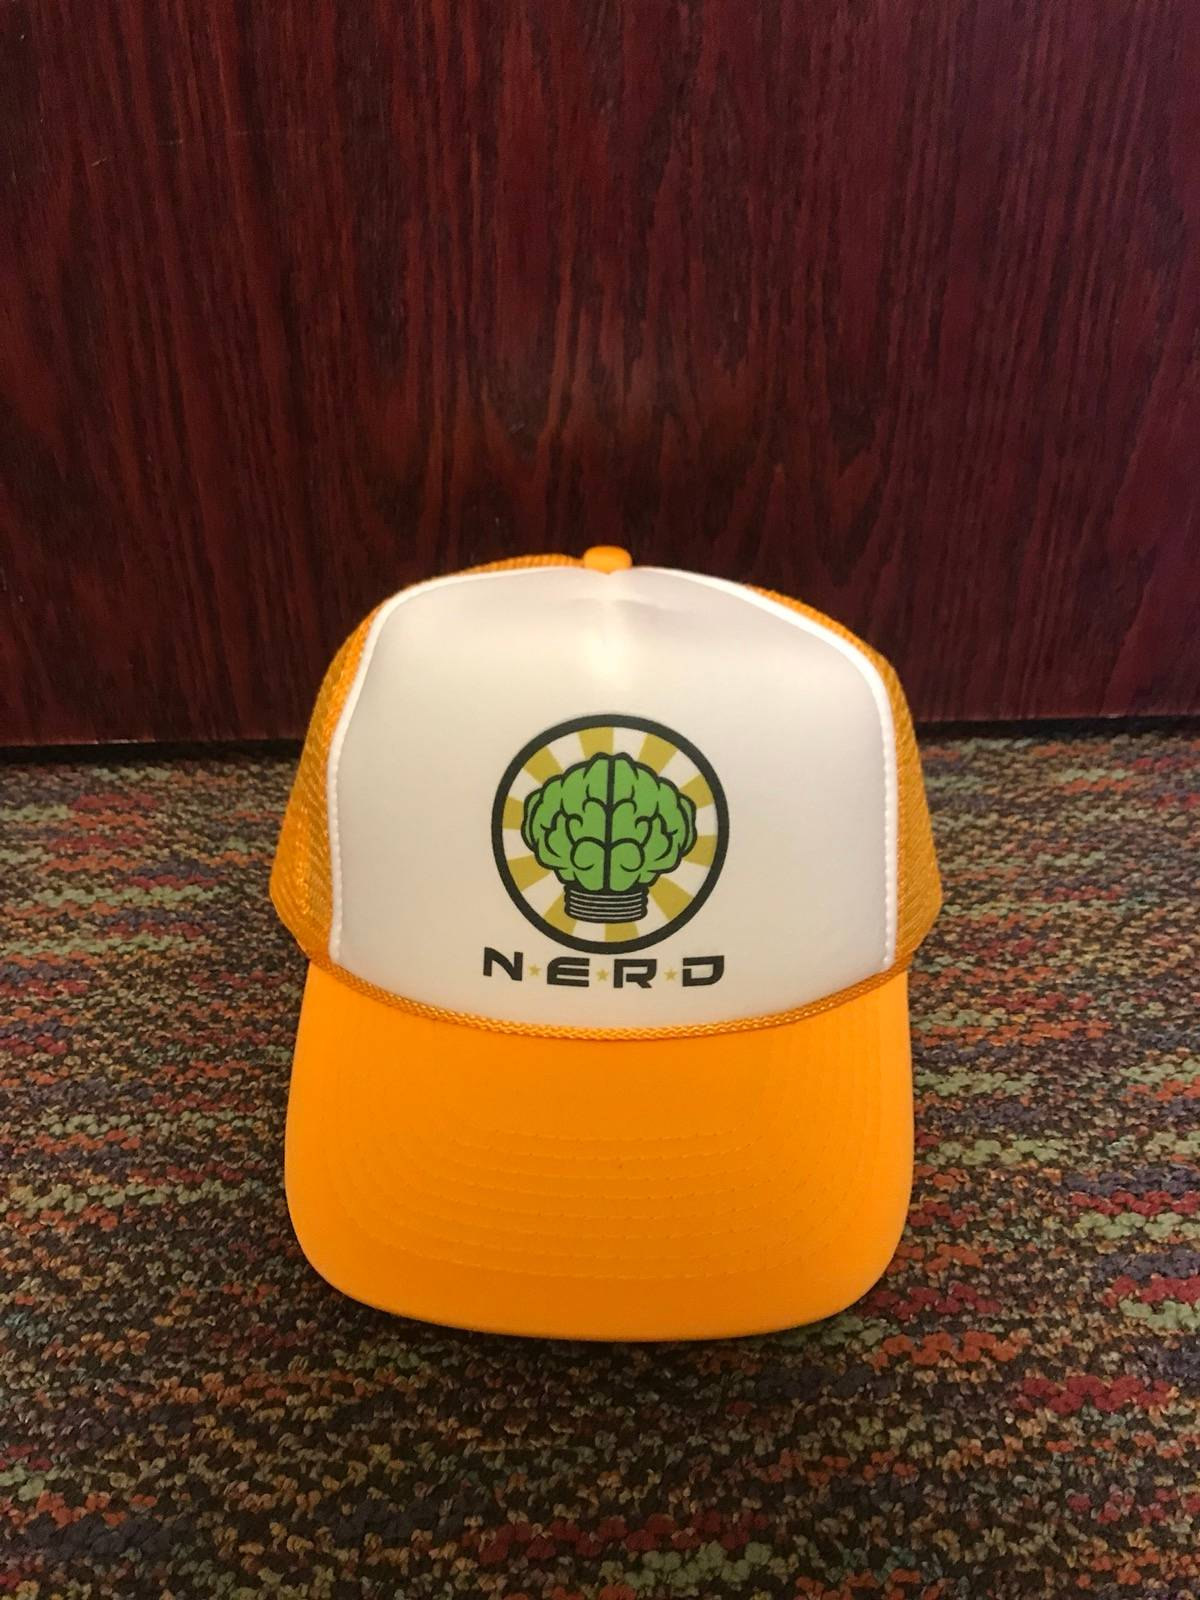 Pharrell N.E.R.D Trucker Hat Size one size - Hats for Sale - Grailed add422f1c77